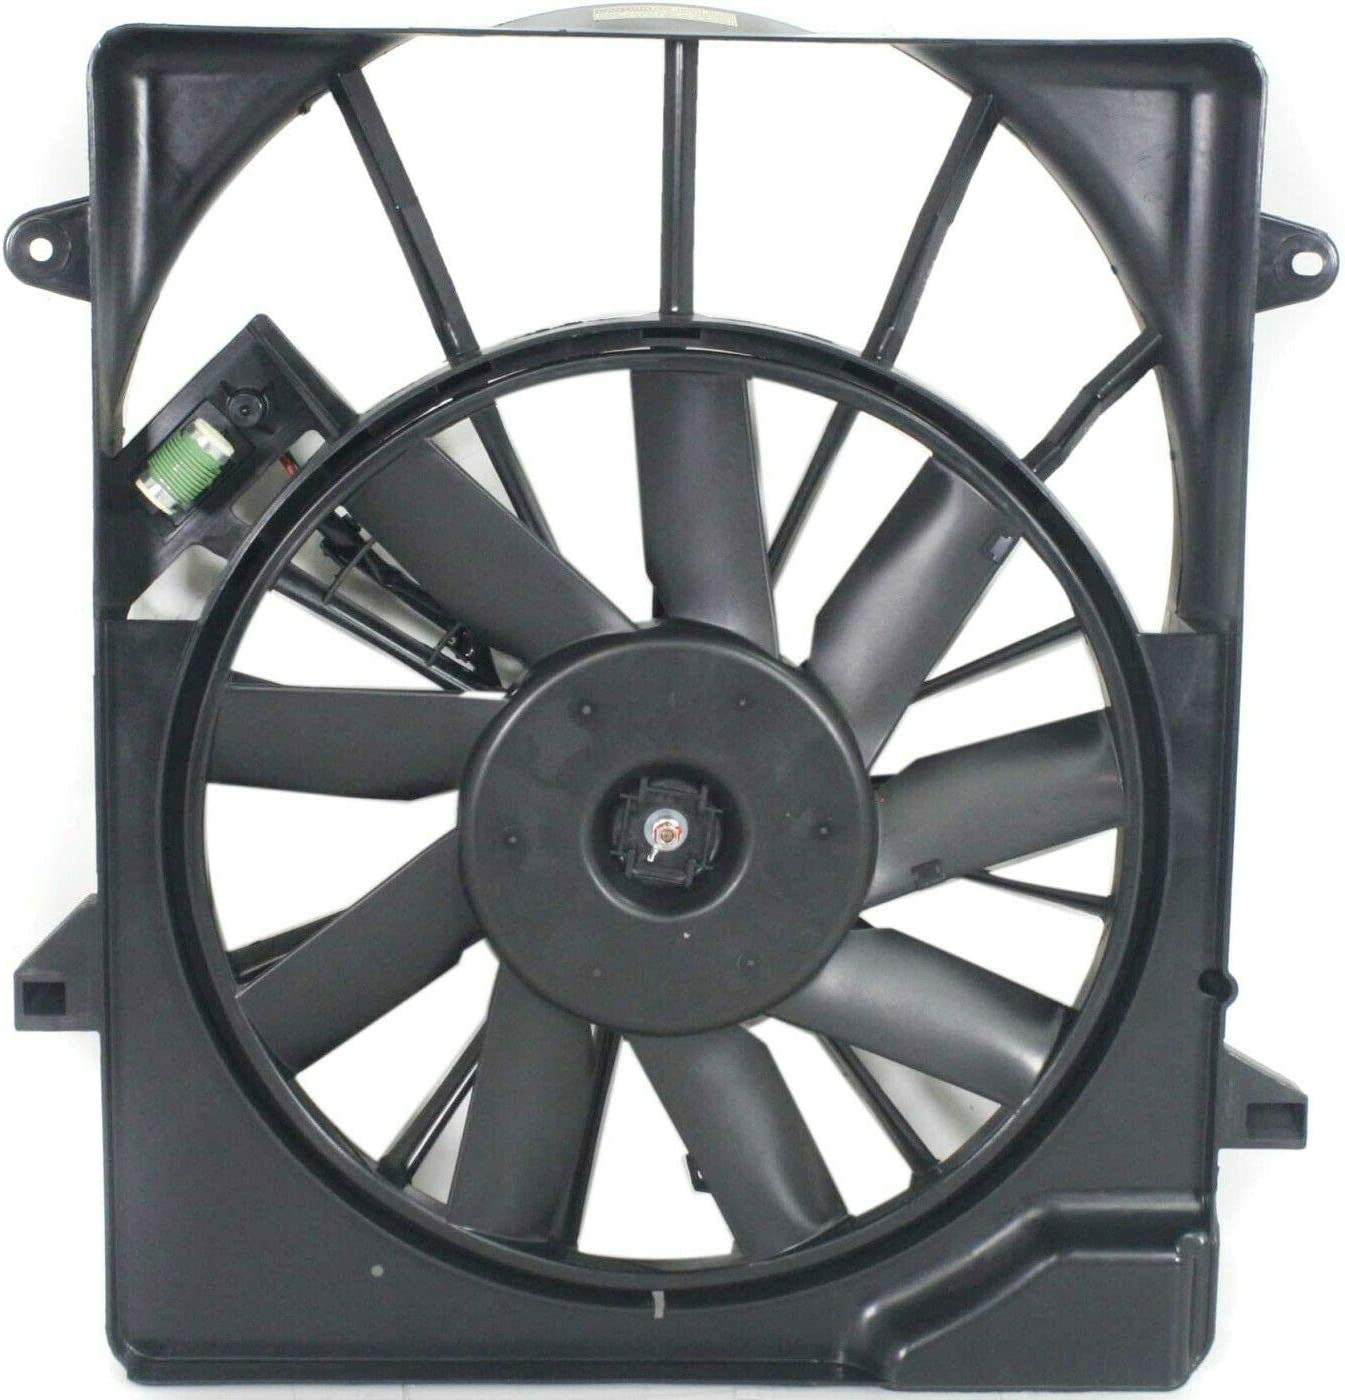 Deebior Radiator Cooling Industry No. 1 Fan Compatible Limited price sale 2010-2011 with Det Nitro